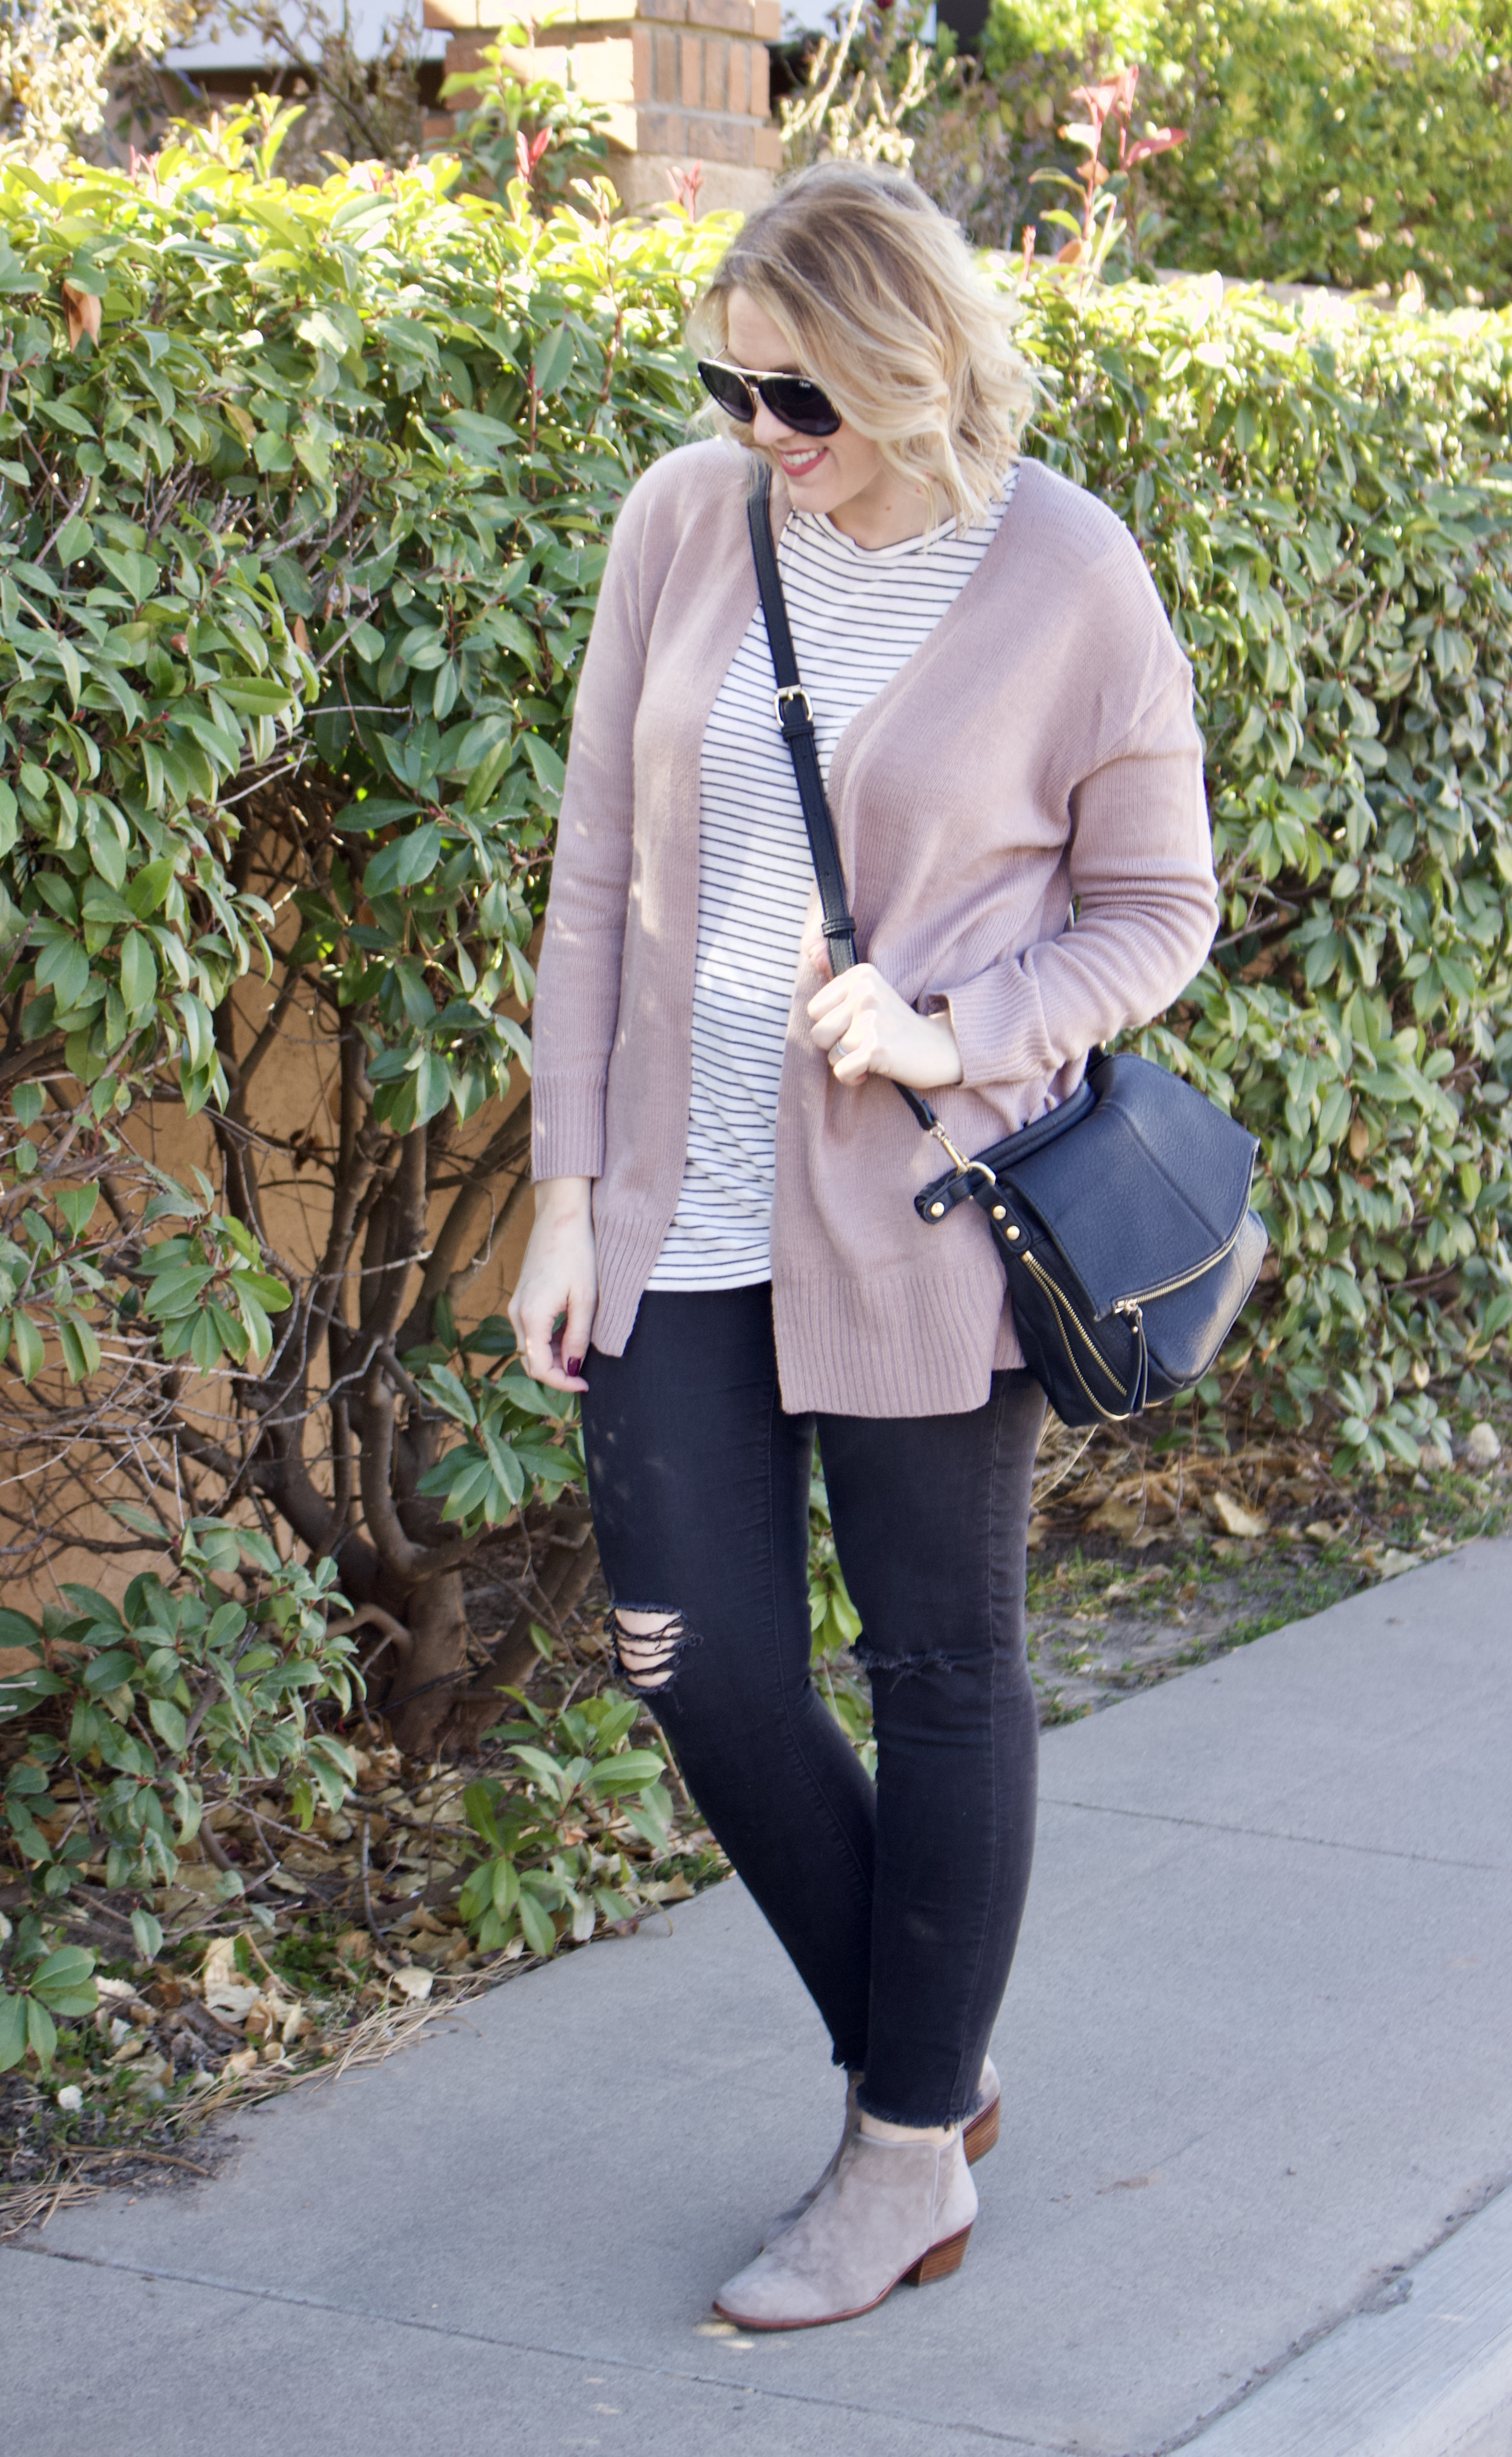 casual winter layers curvy fashion #curvyfashion #oldnavystyle #winterlayers